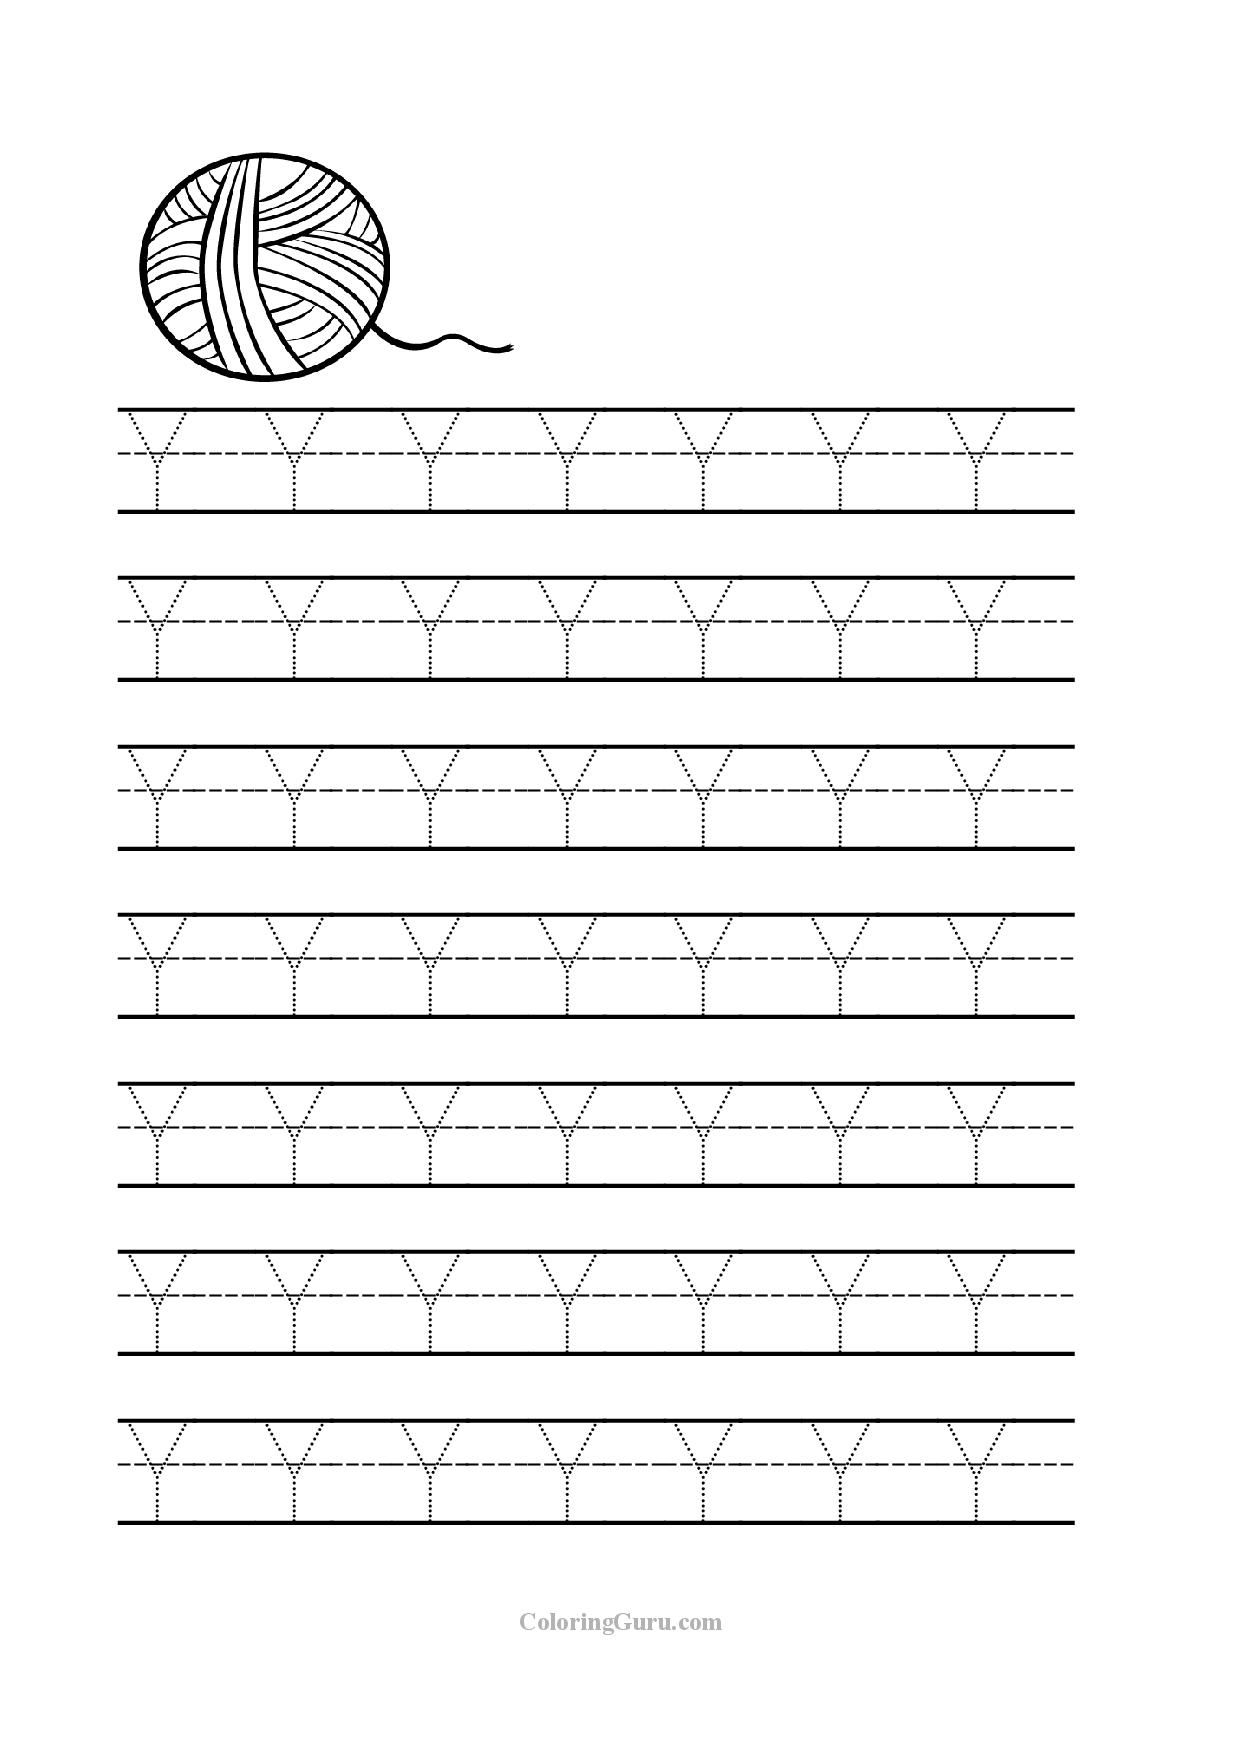 Free Printable Tracing Letter Y Worksheets For Preschool inside Letter Y Worksheets Free